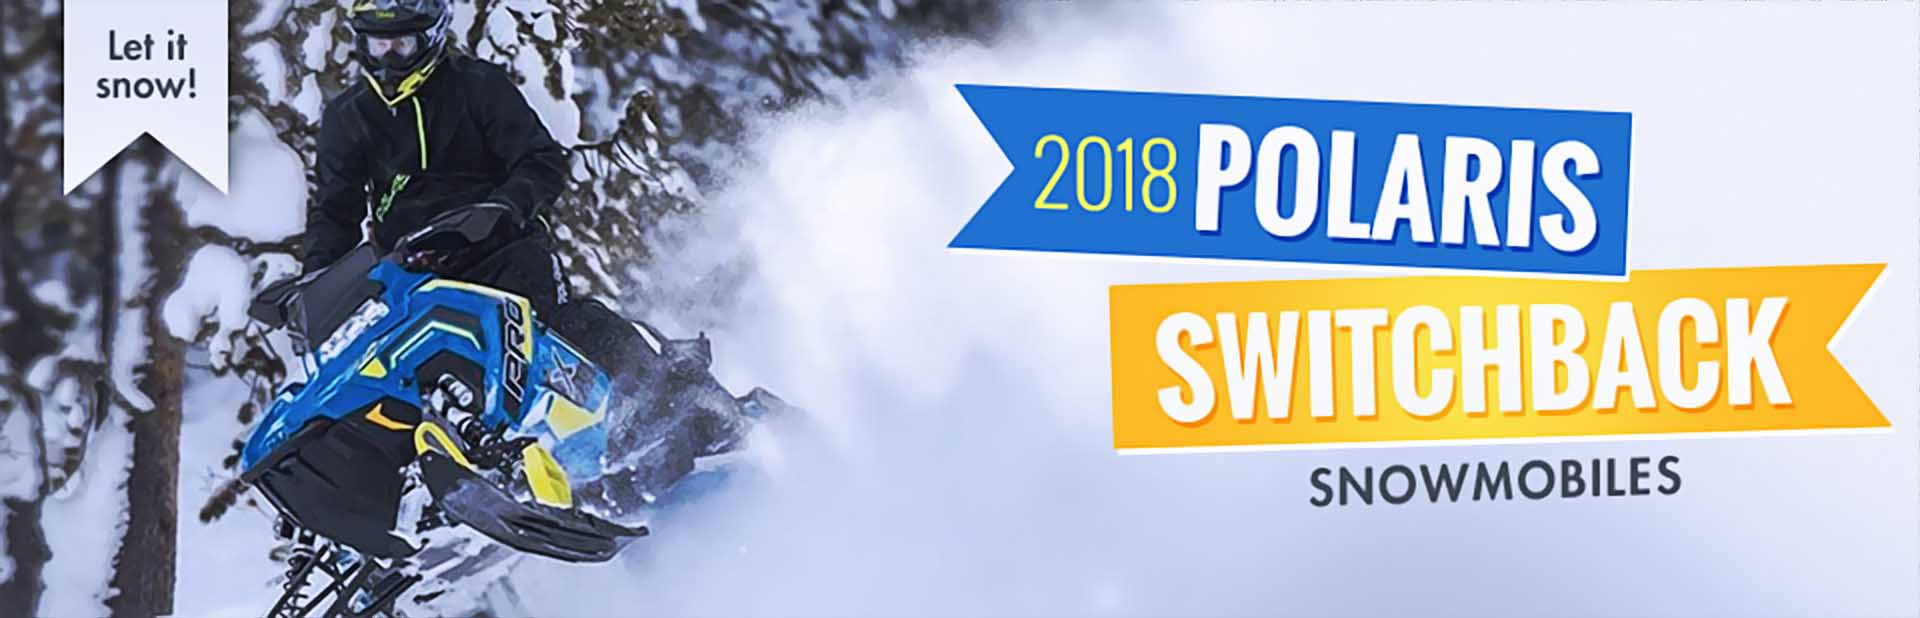 2018 Polaris Switchback Snowmobiles: Click here to view the models.